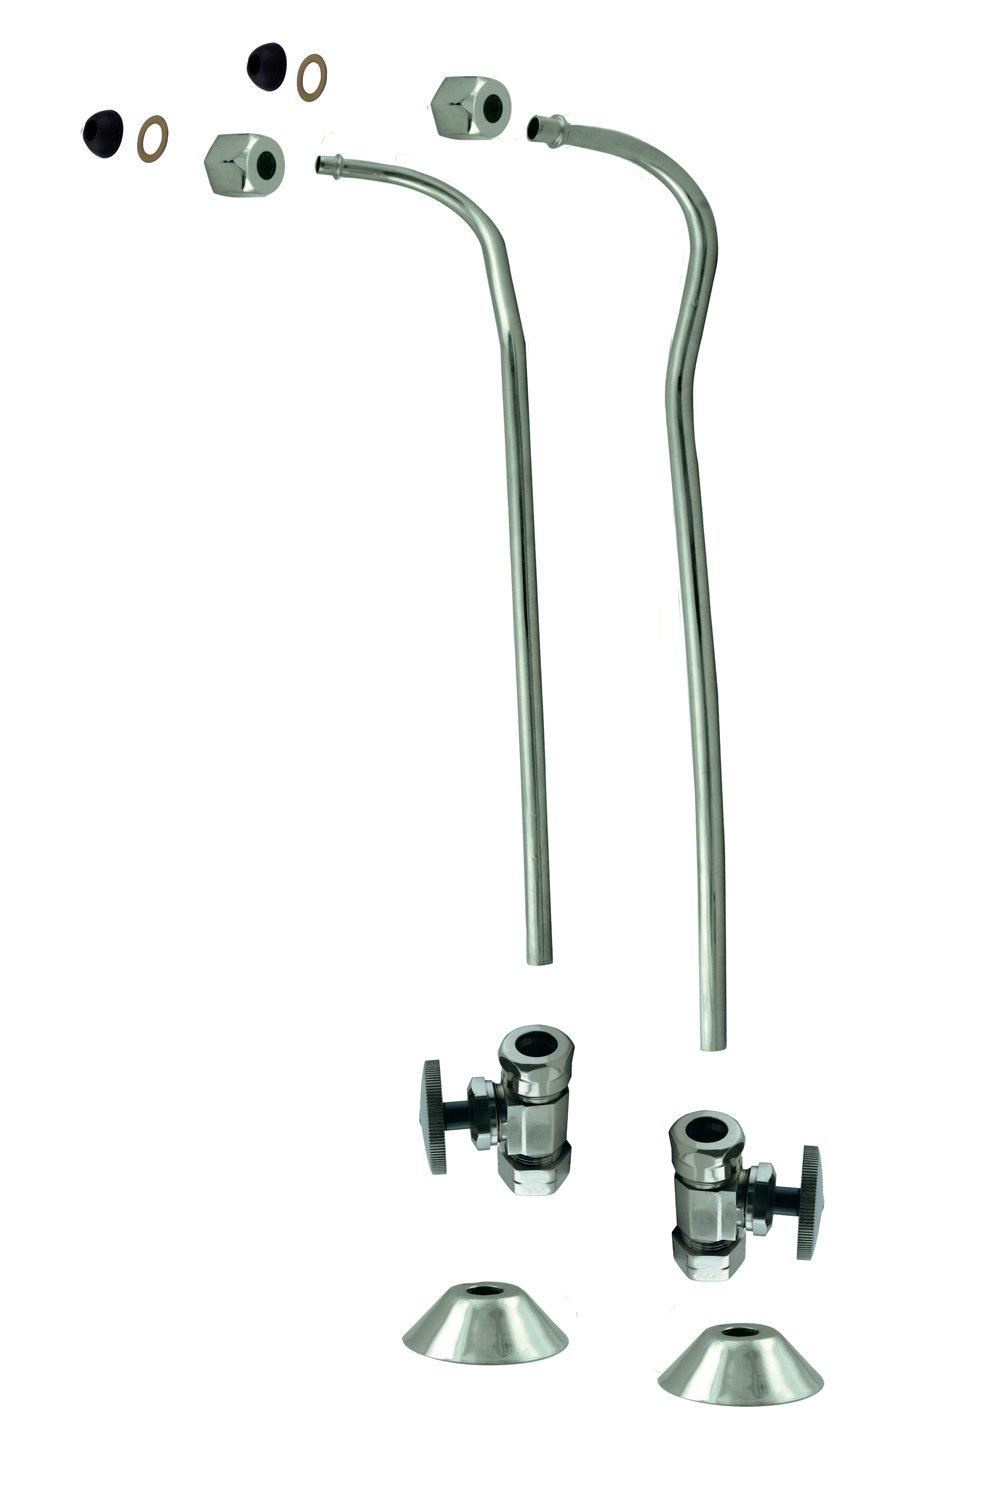 Westbrass D136-110-26 Copper Stops 1/2 Double Offset Bath Supply, Polished Chrome by Westbrass